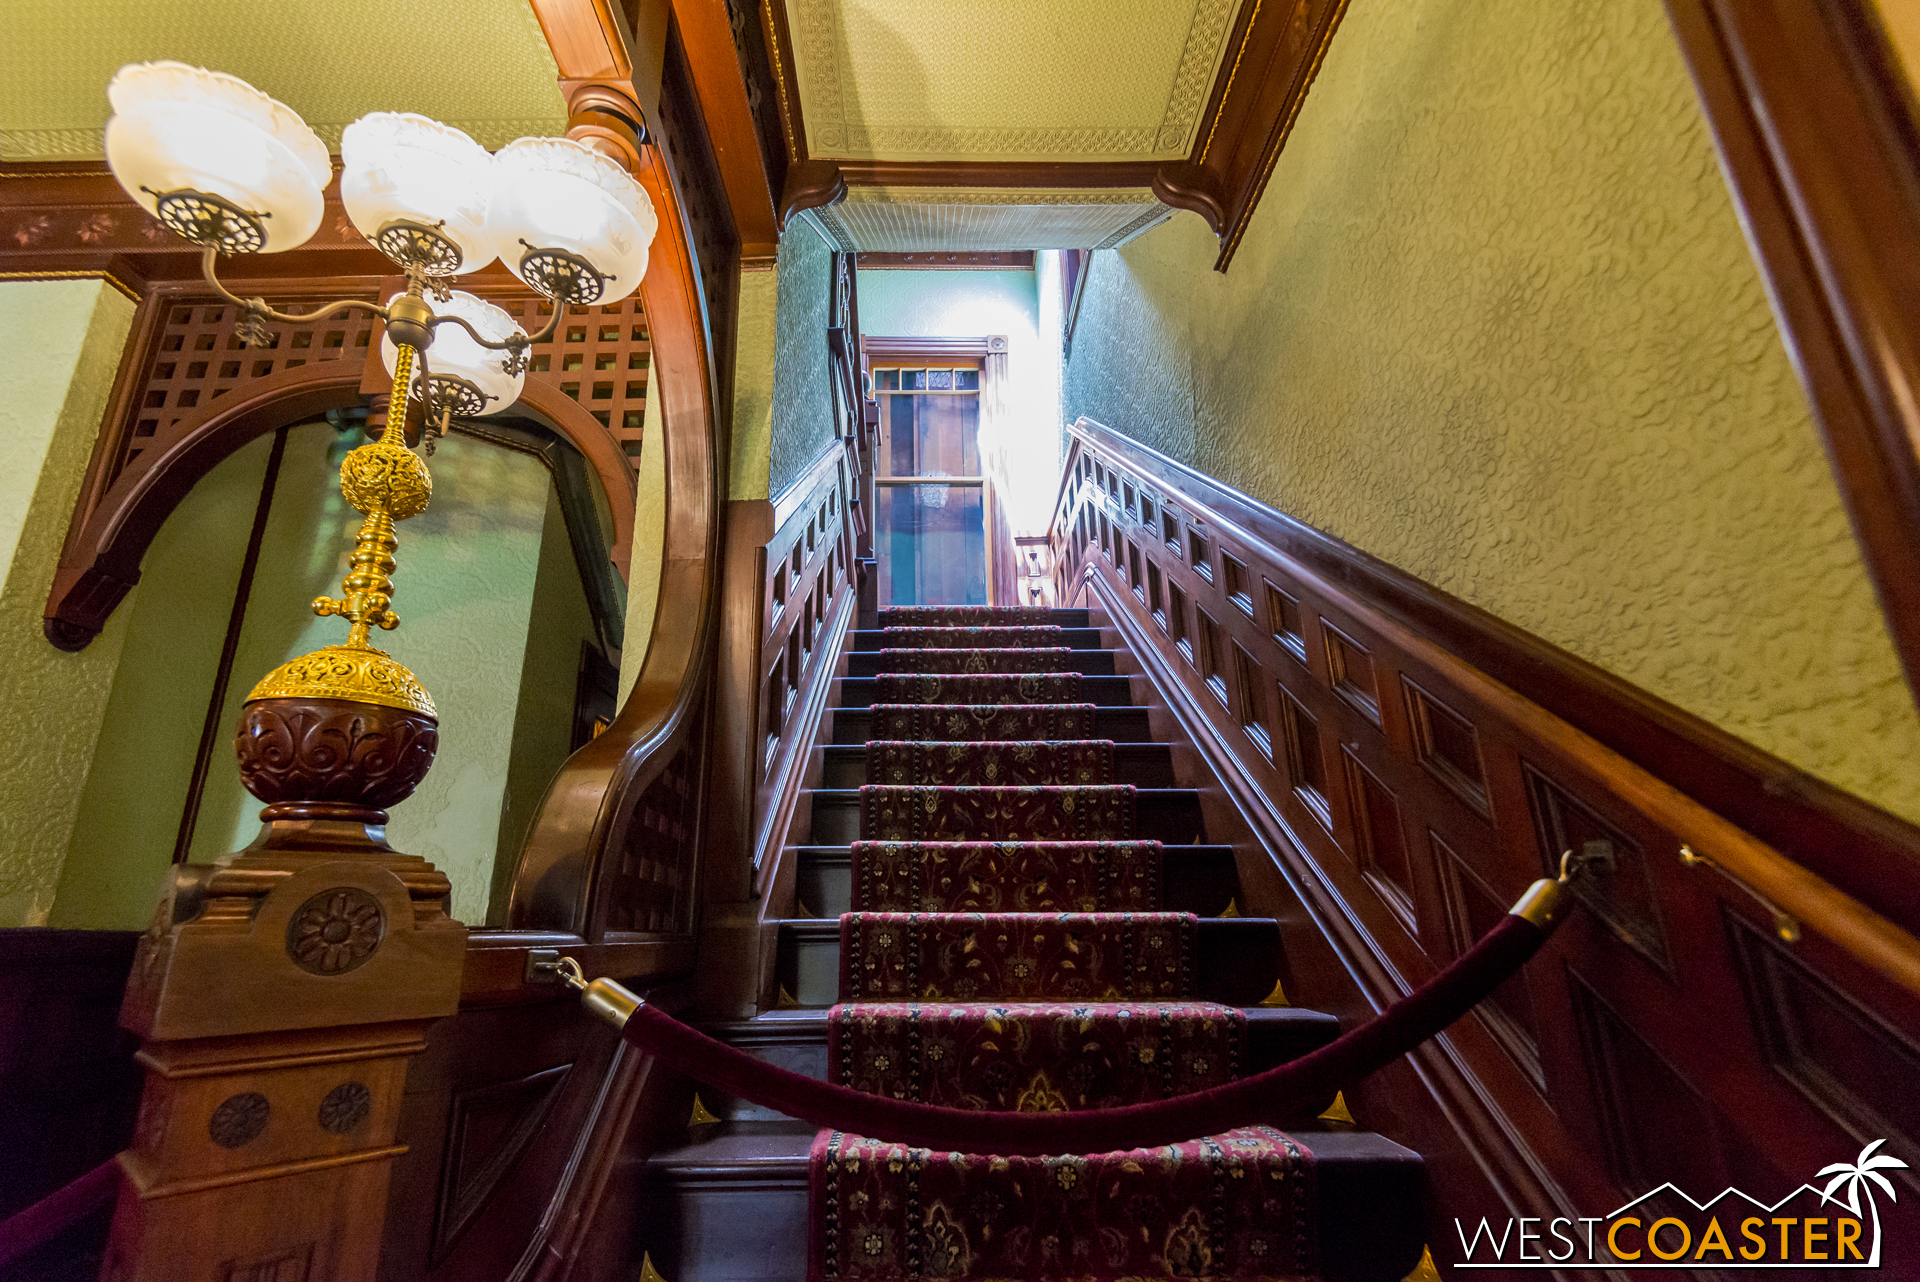 Looking up one of the many stairs within the Winchester Mystery House.